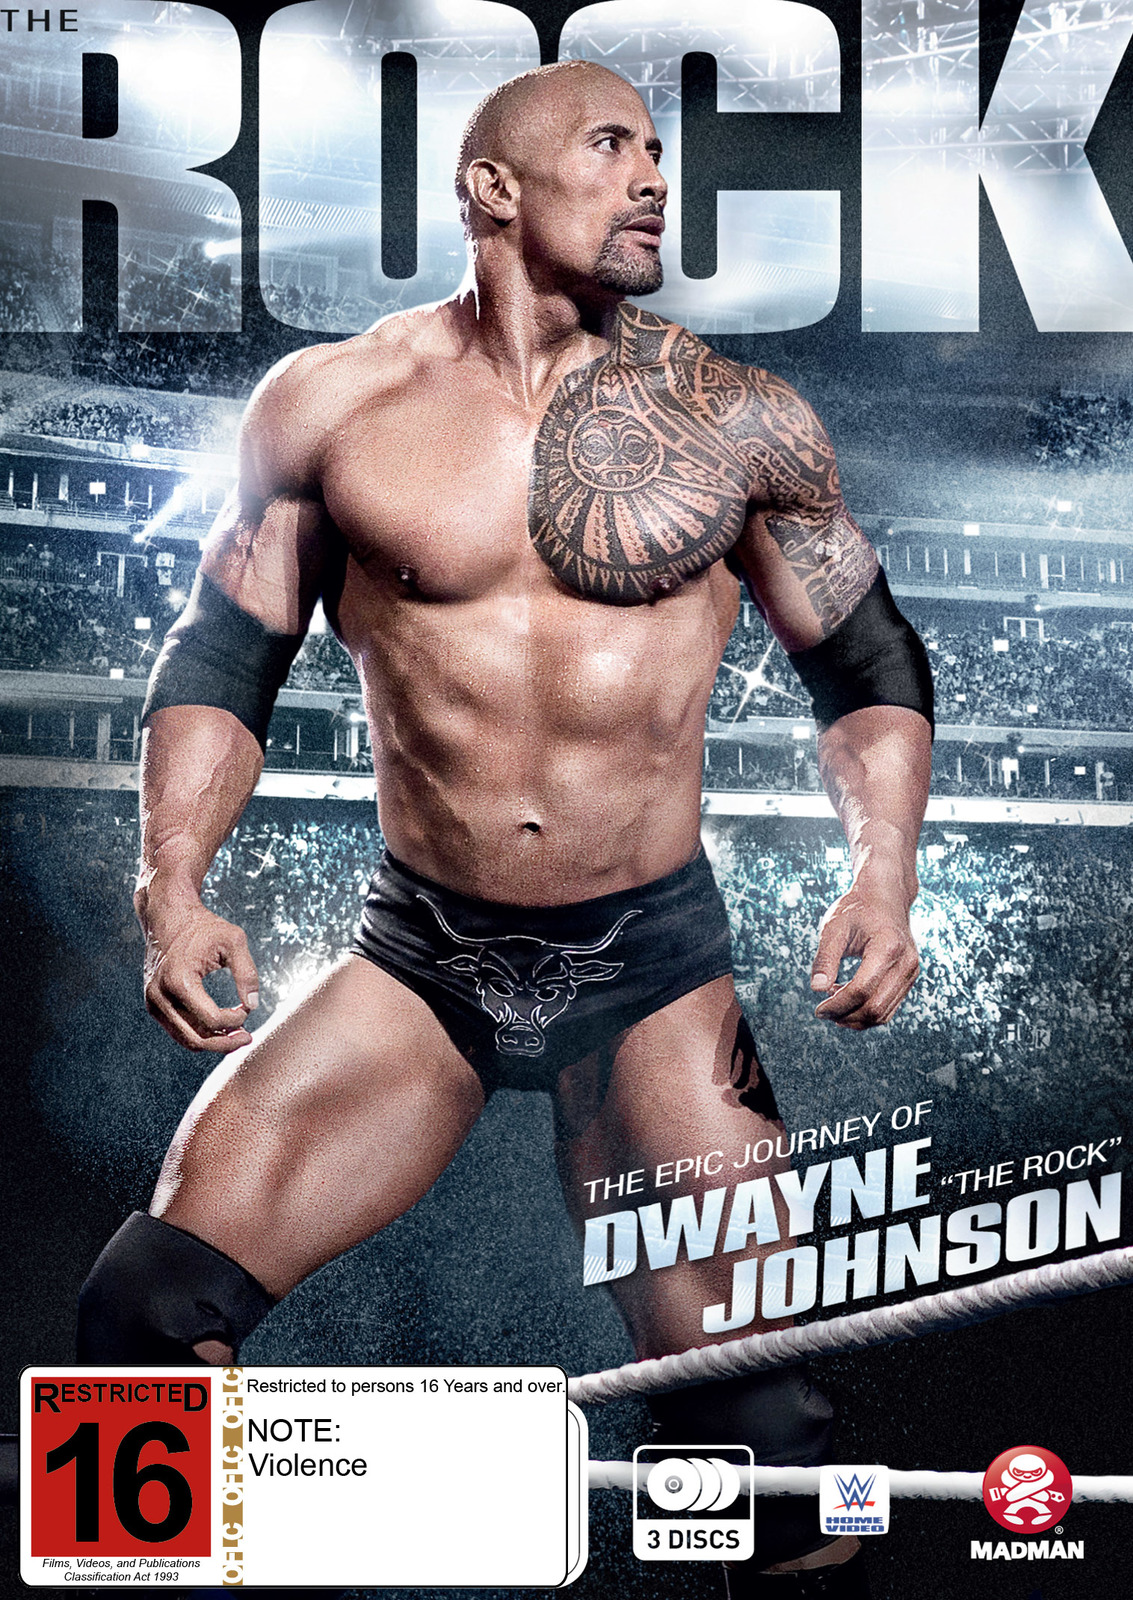 WWE: The Rock: The Epic Journey Of Dwayne Johnson on DVD image